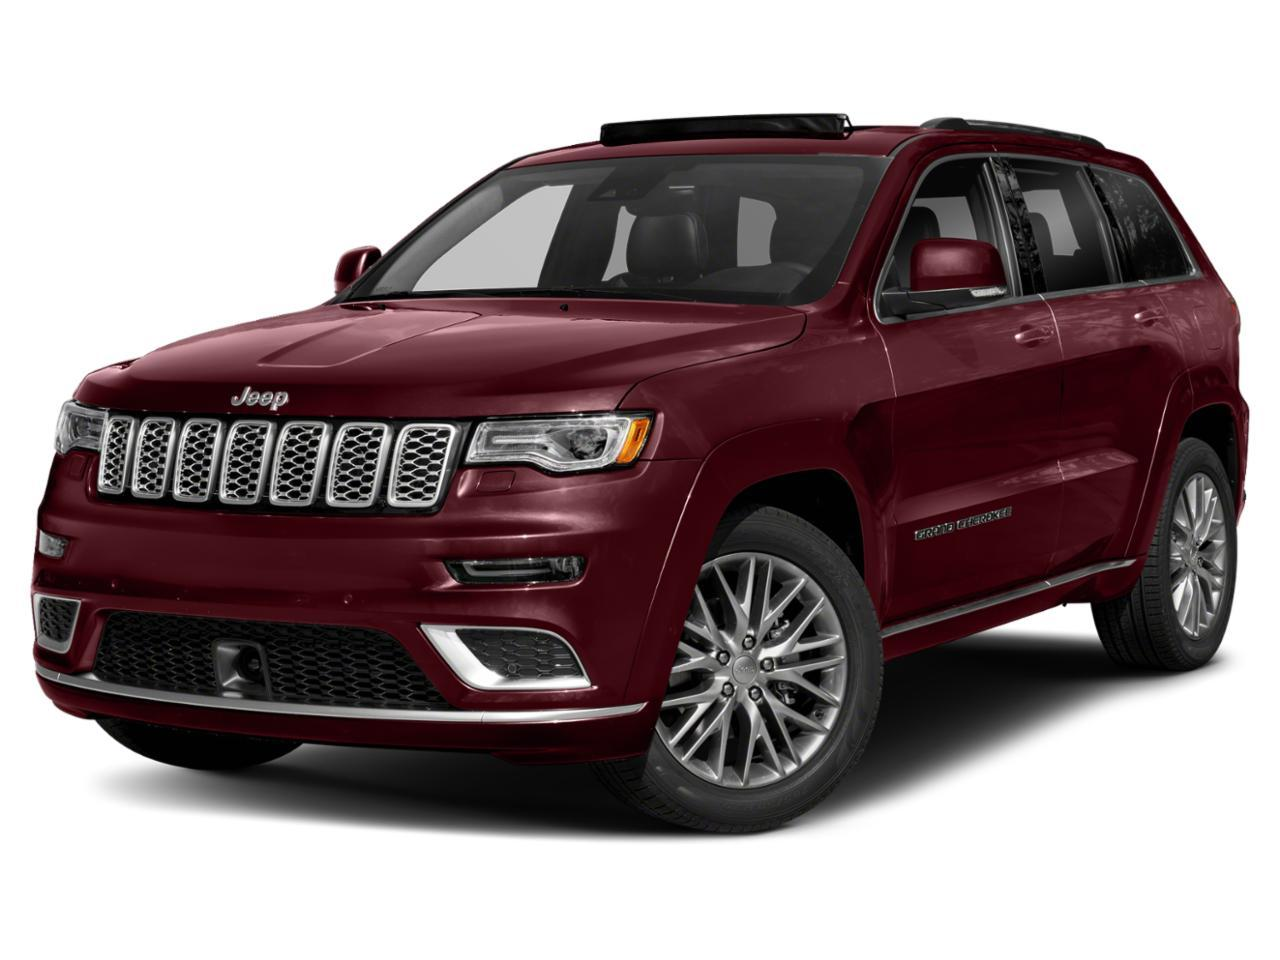 2018 Jeep Grand Cherokee Vehicle Photo in Lewisville, TX 75067